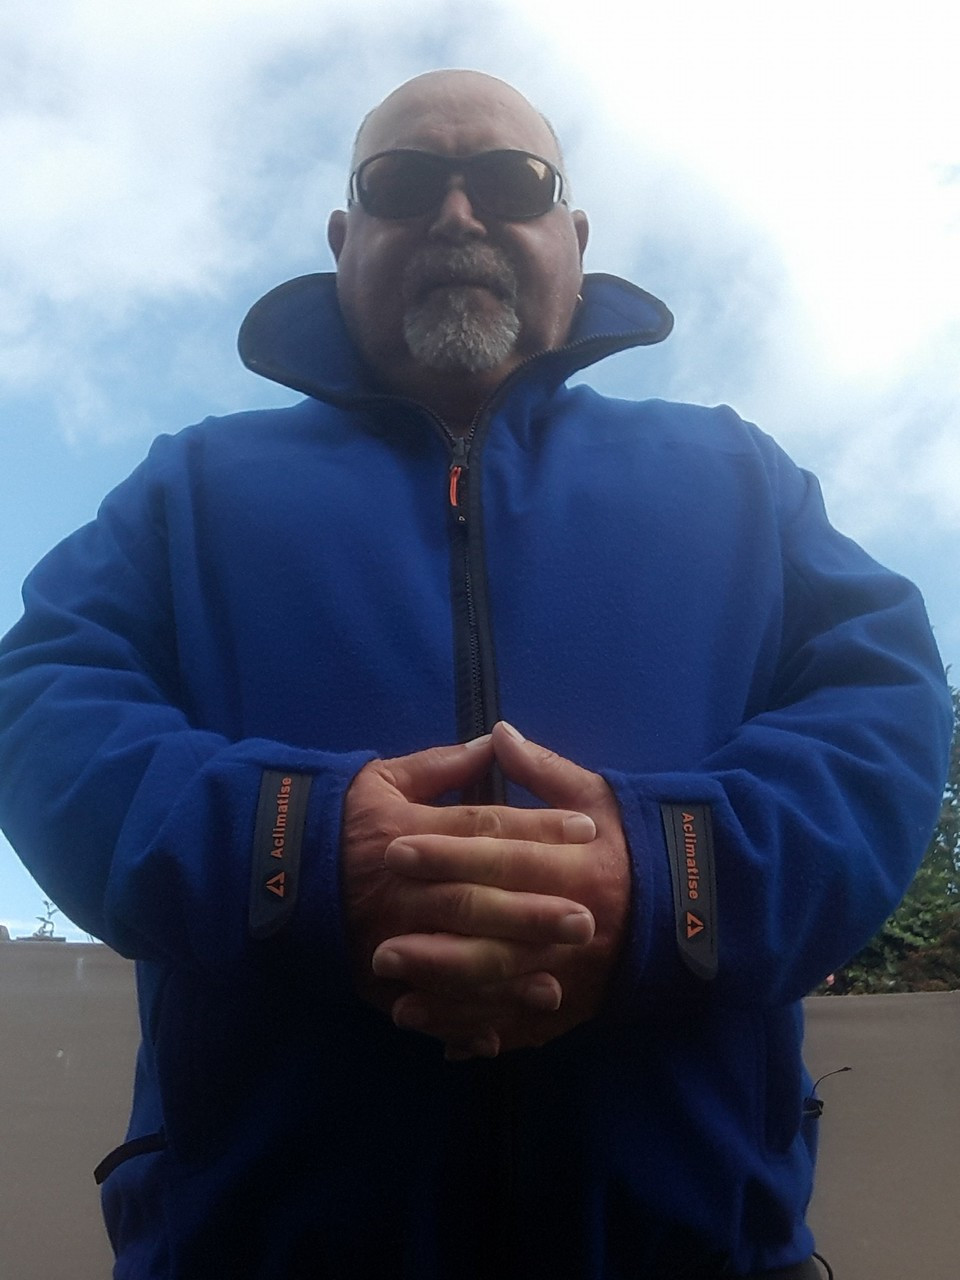 Tony King Angling ambassador, wearing the Highlander Fleece in Royal